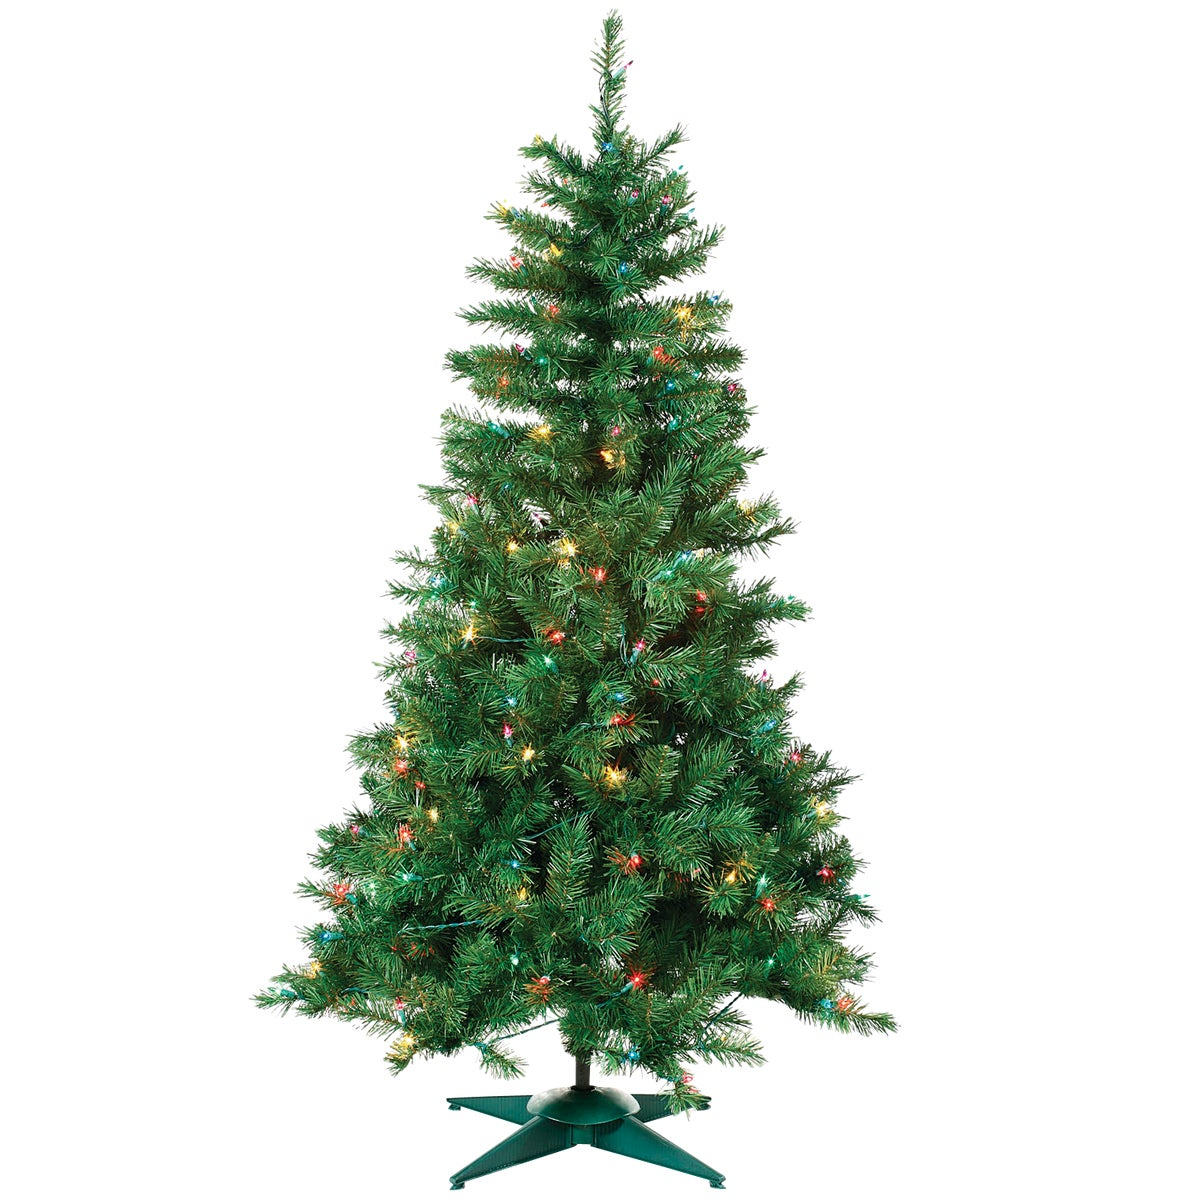 4'P/L COLRAD SPRUCE TREE - 1484-40M by Sterling